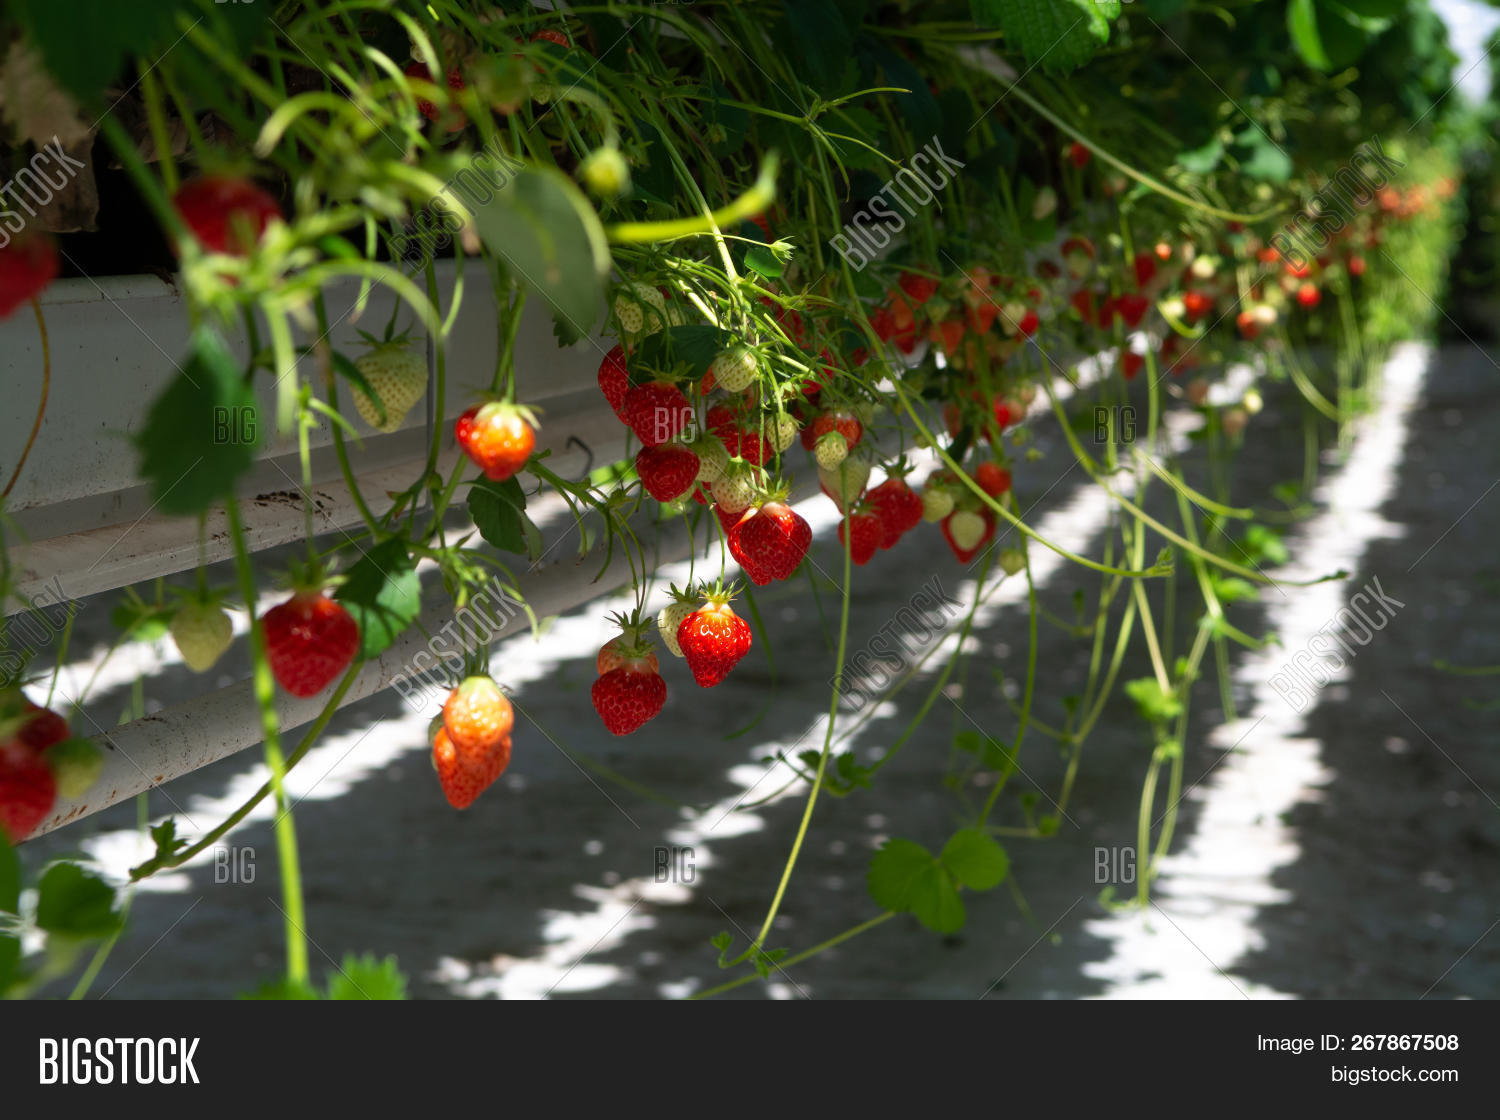 Greenhouse Rows Ripe Image & Photo (Free Trial) | Bigstock